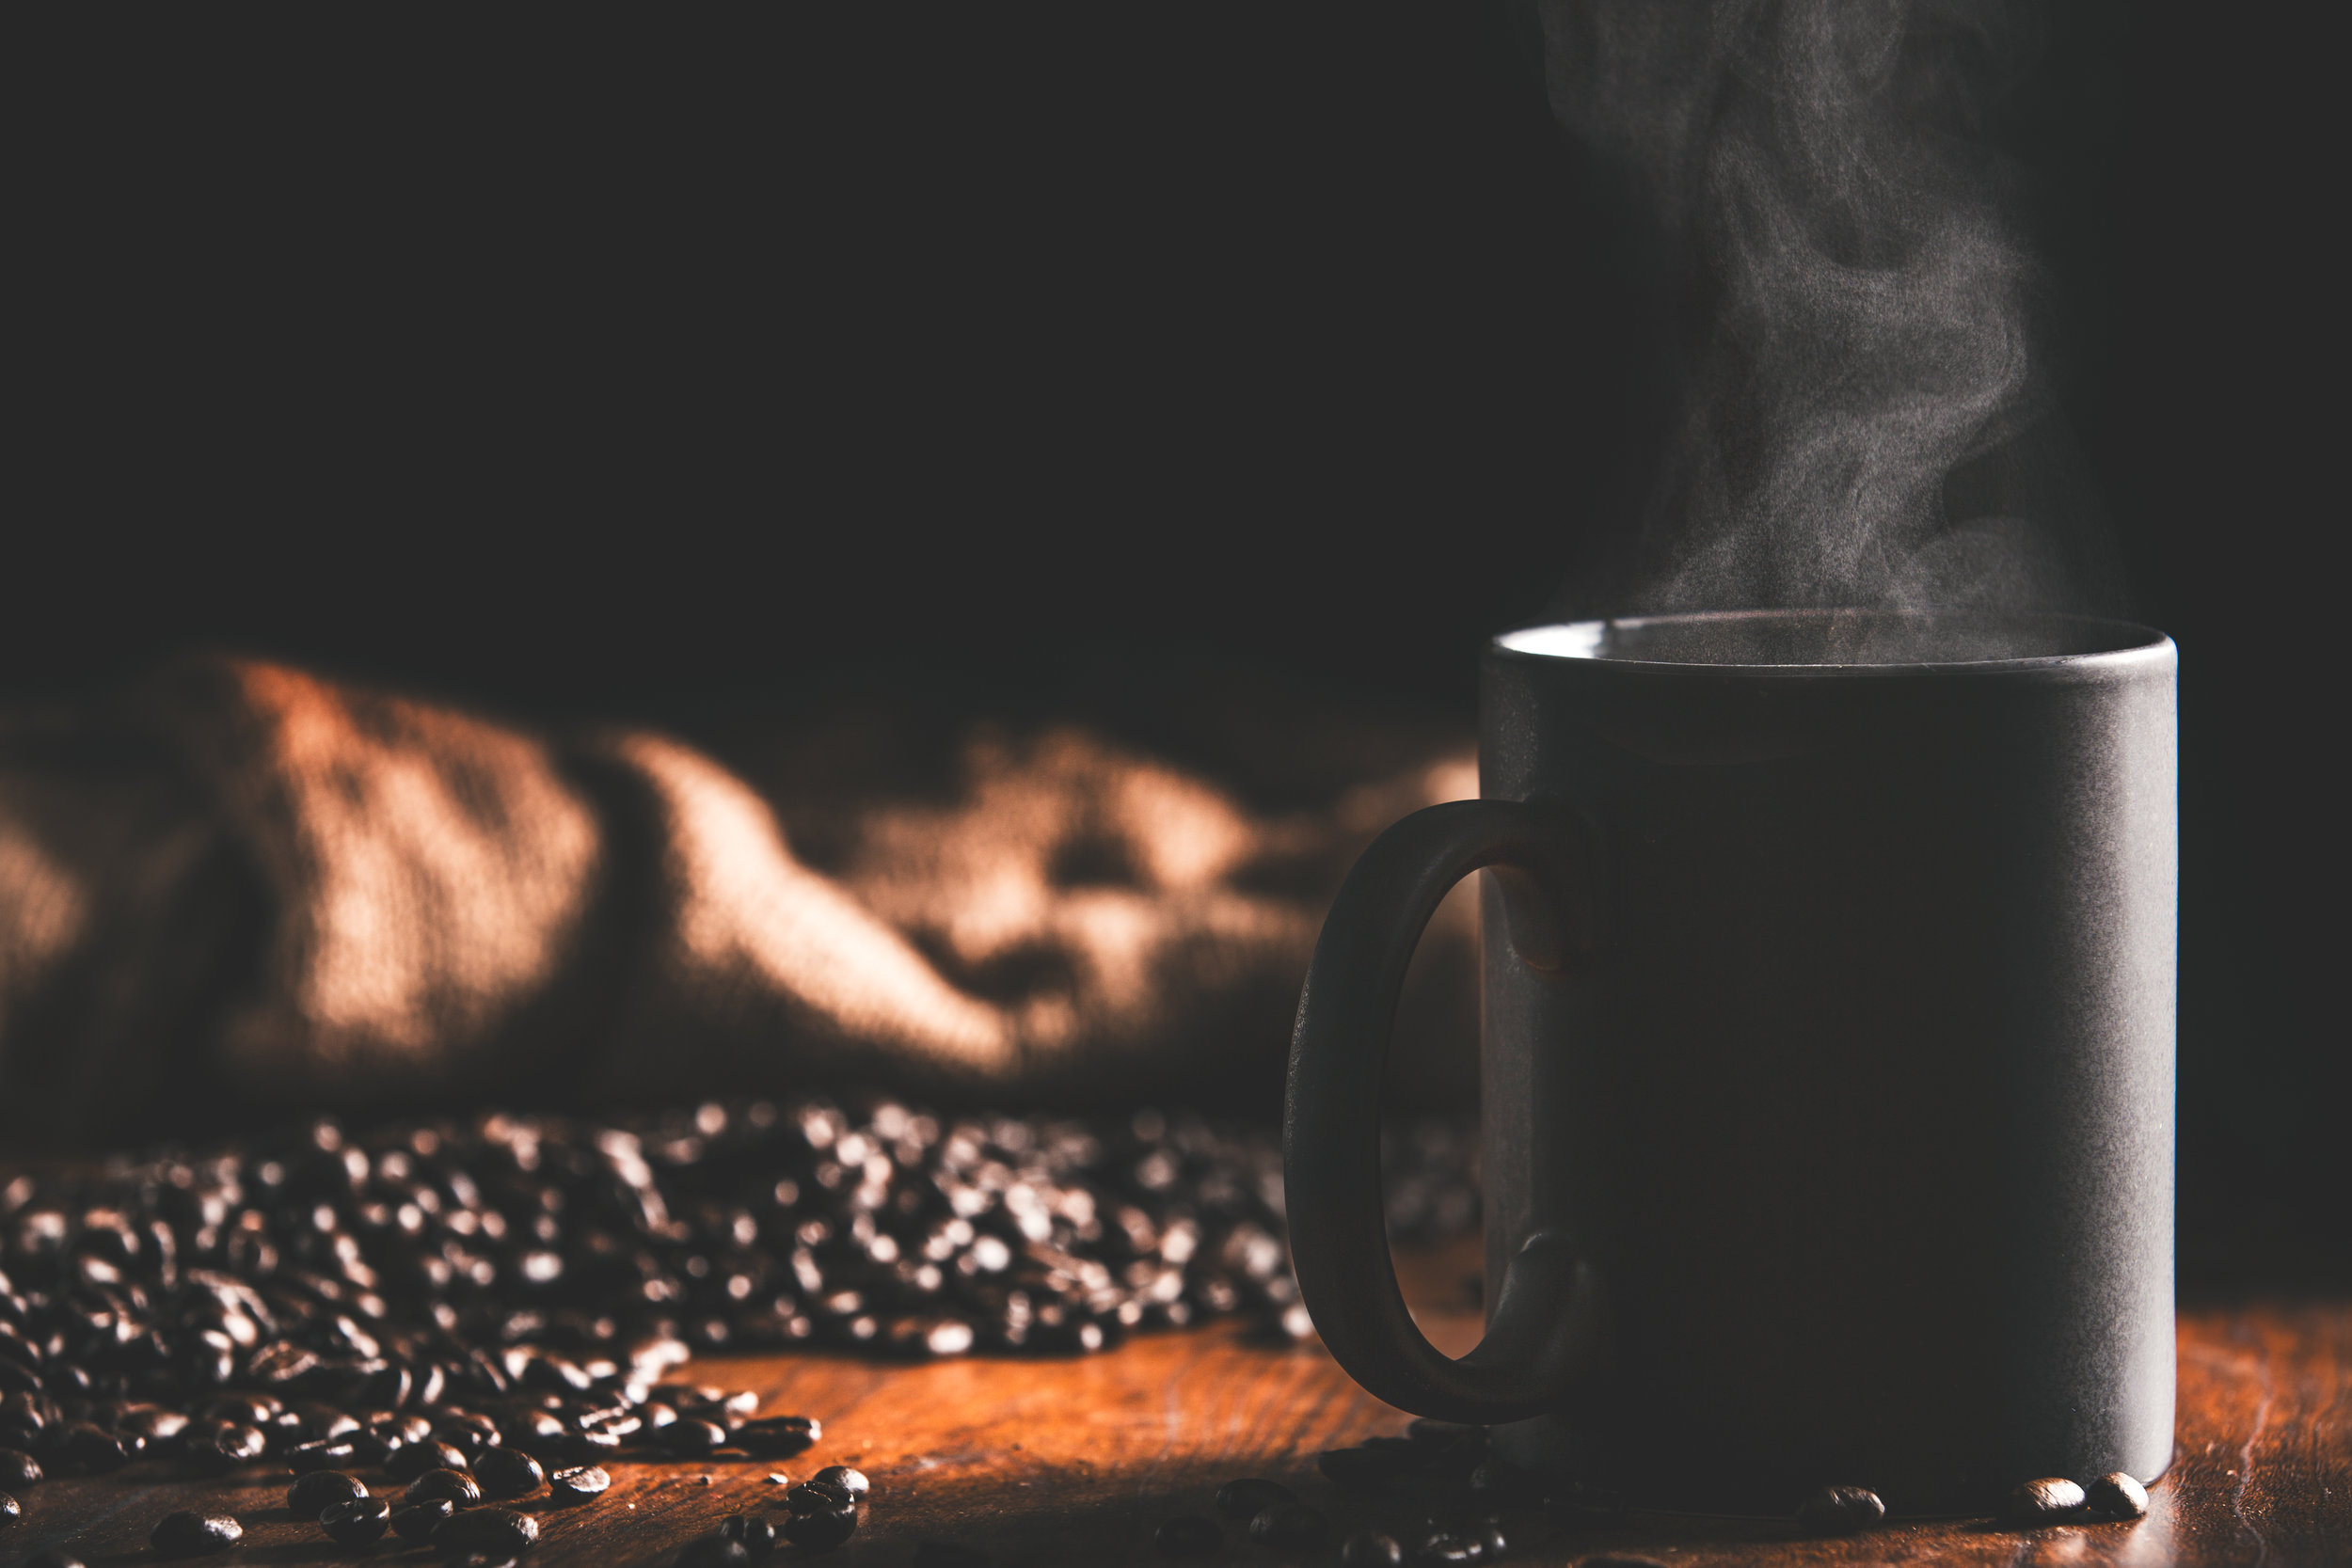 A steaming cup of fresh joe, some scattered beans pouring from a burlap sack, all on a rustic/industrial wooden table. Keep reading and watch the tutorial to see how I achieved this dramatic shot...